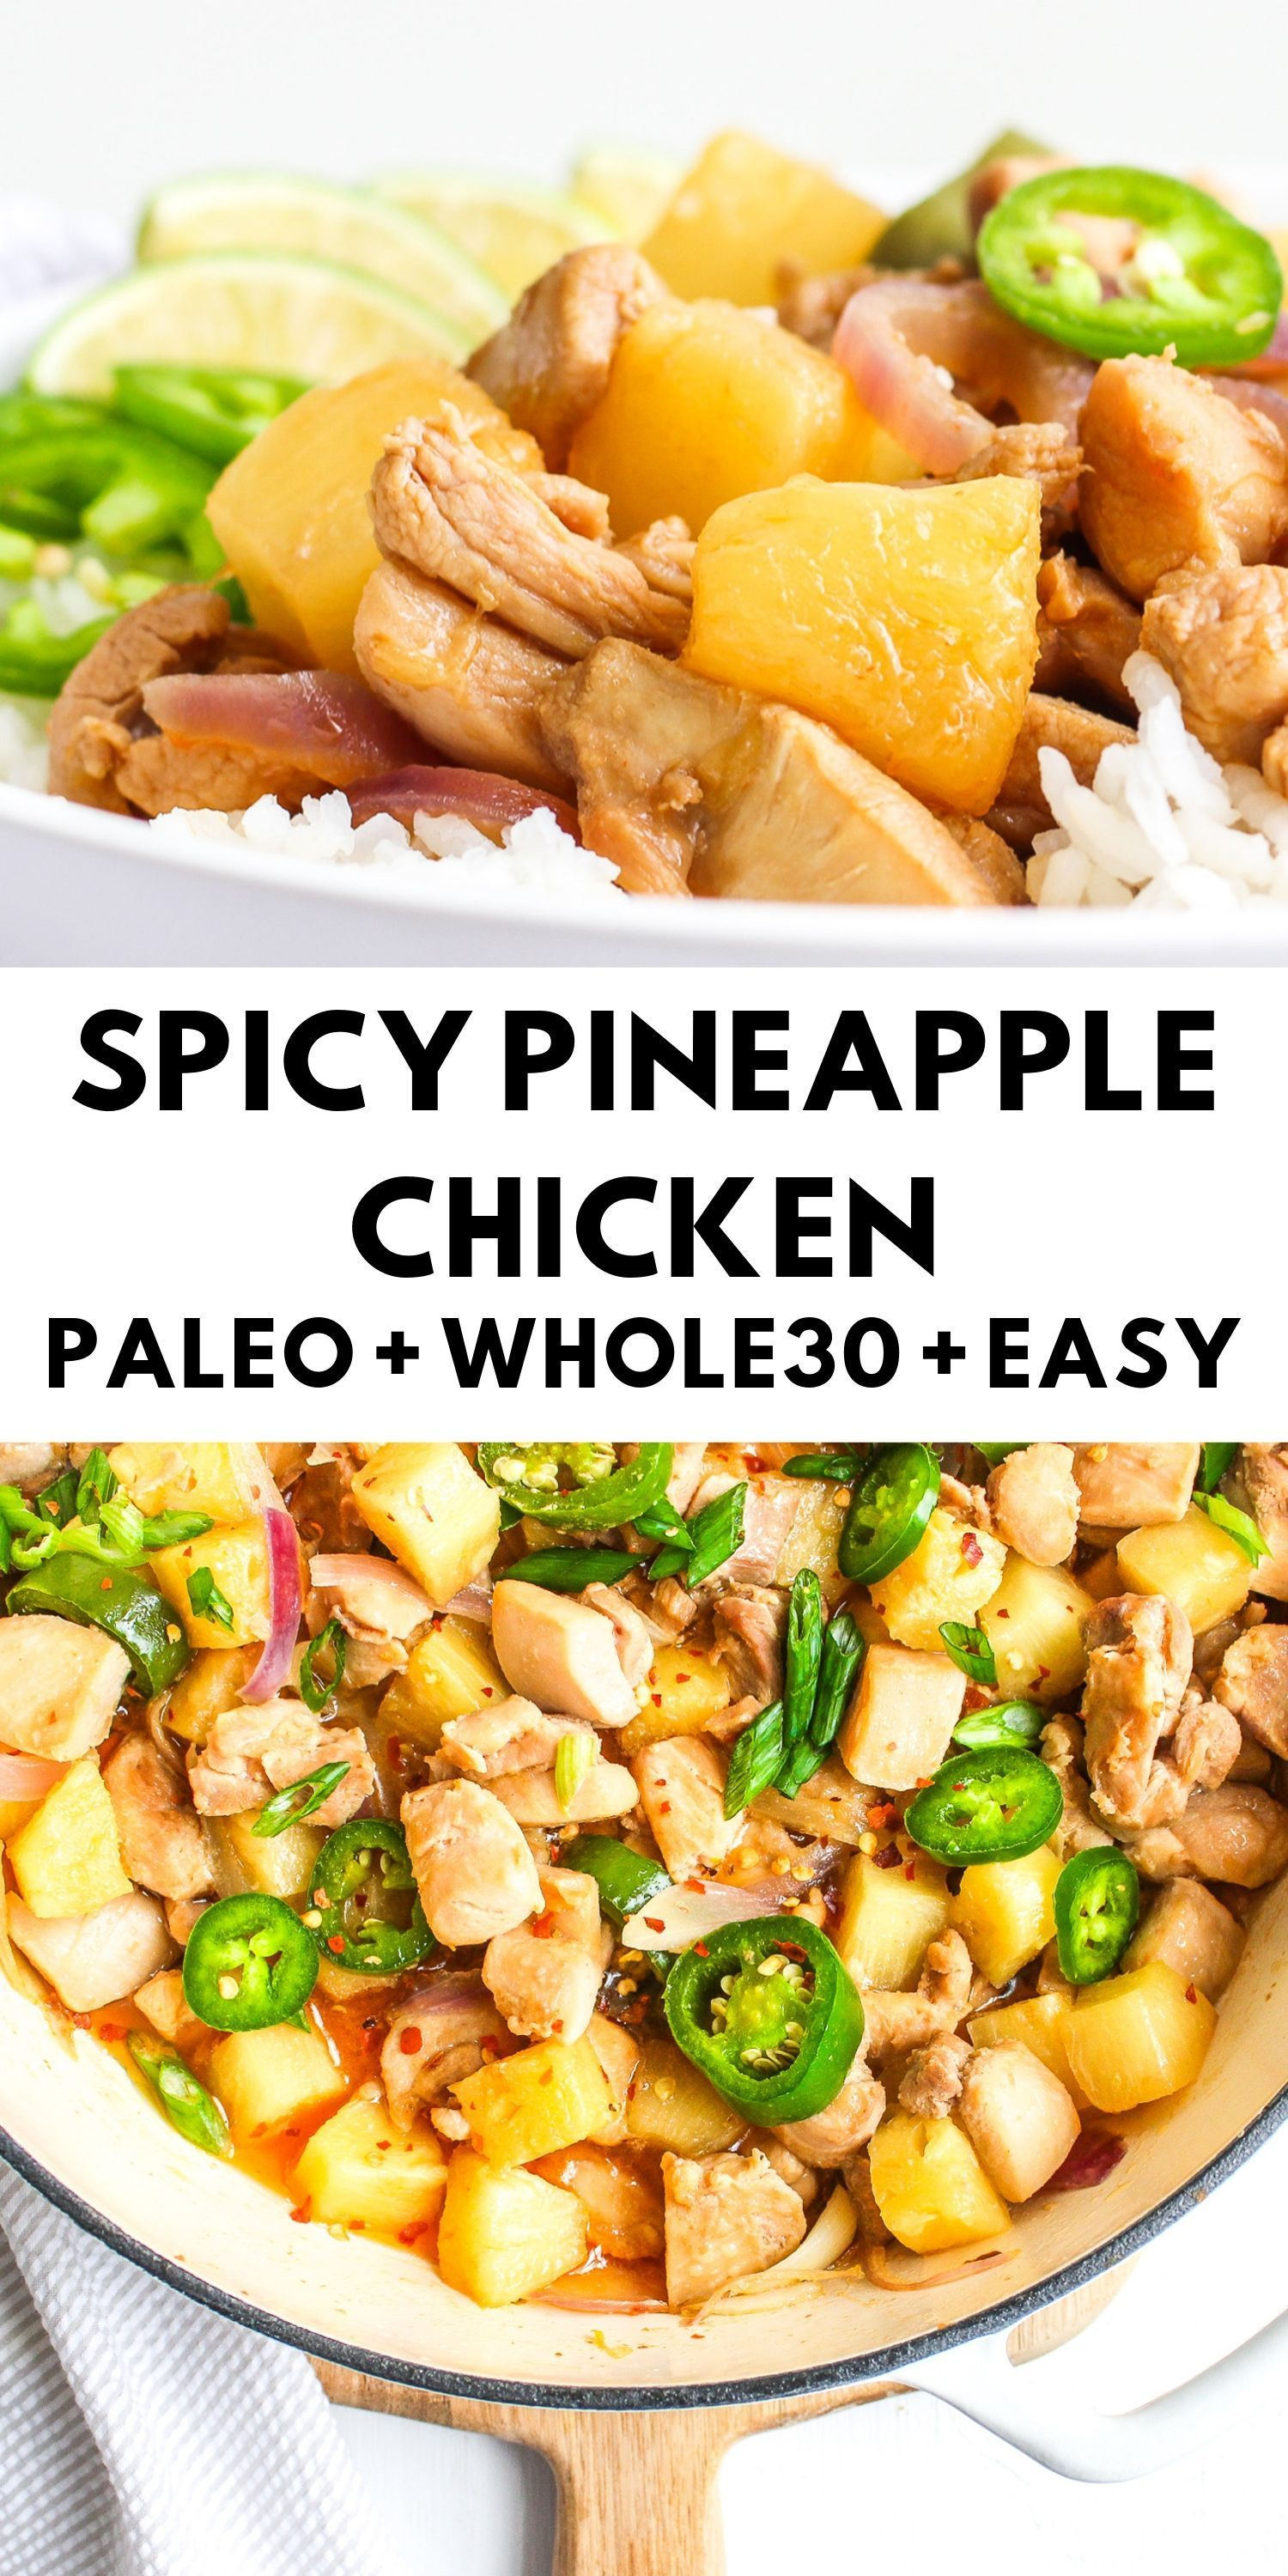 Spicy Pineapple Chicken - Paleo, Whole30 - The Bettered Blondie